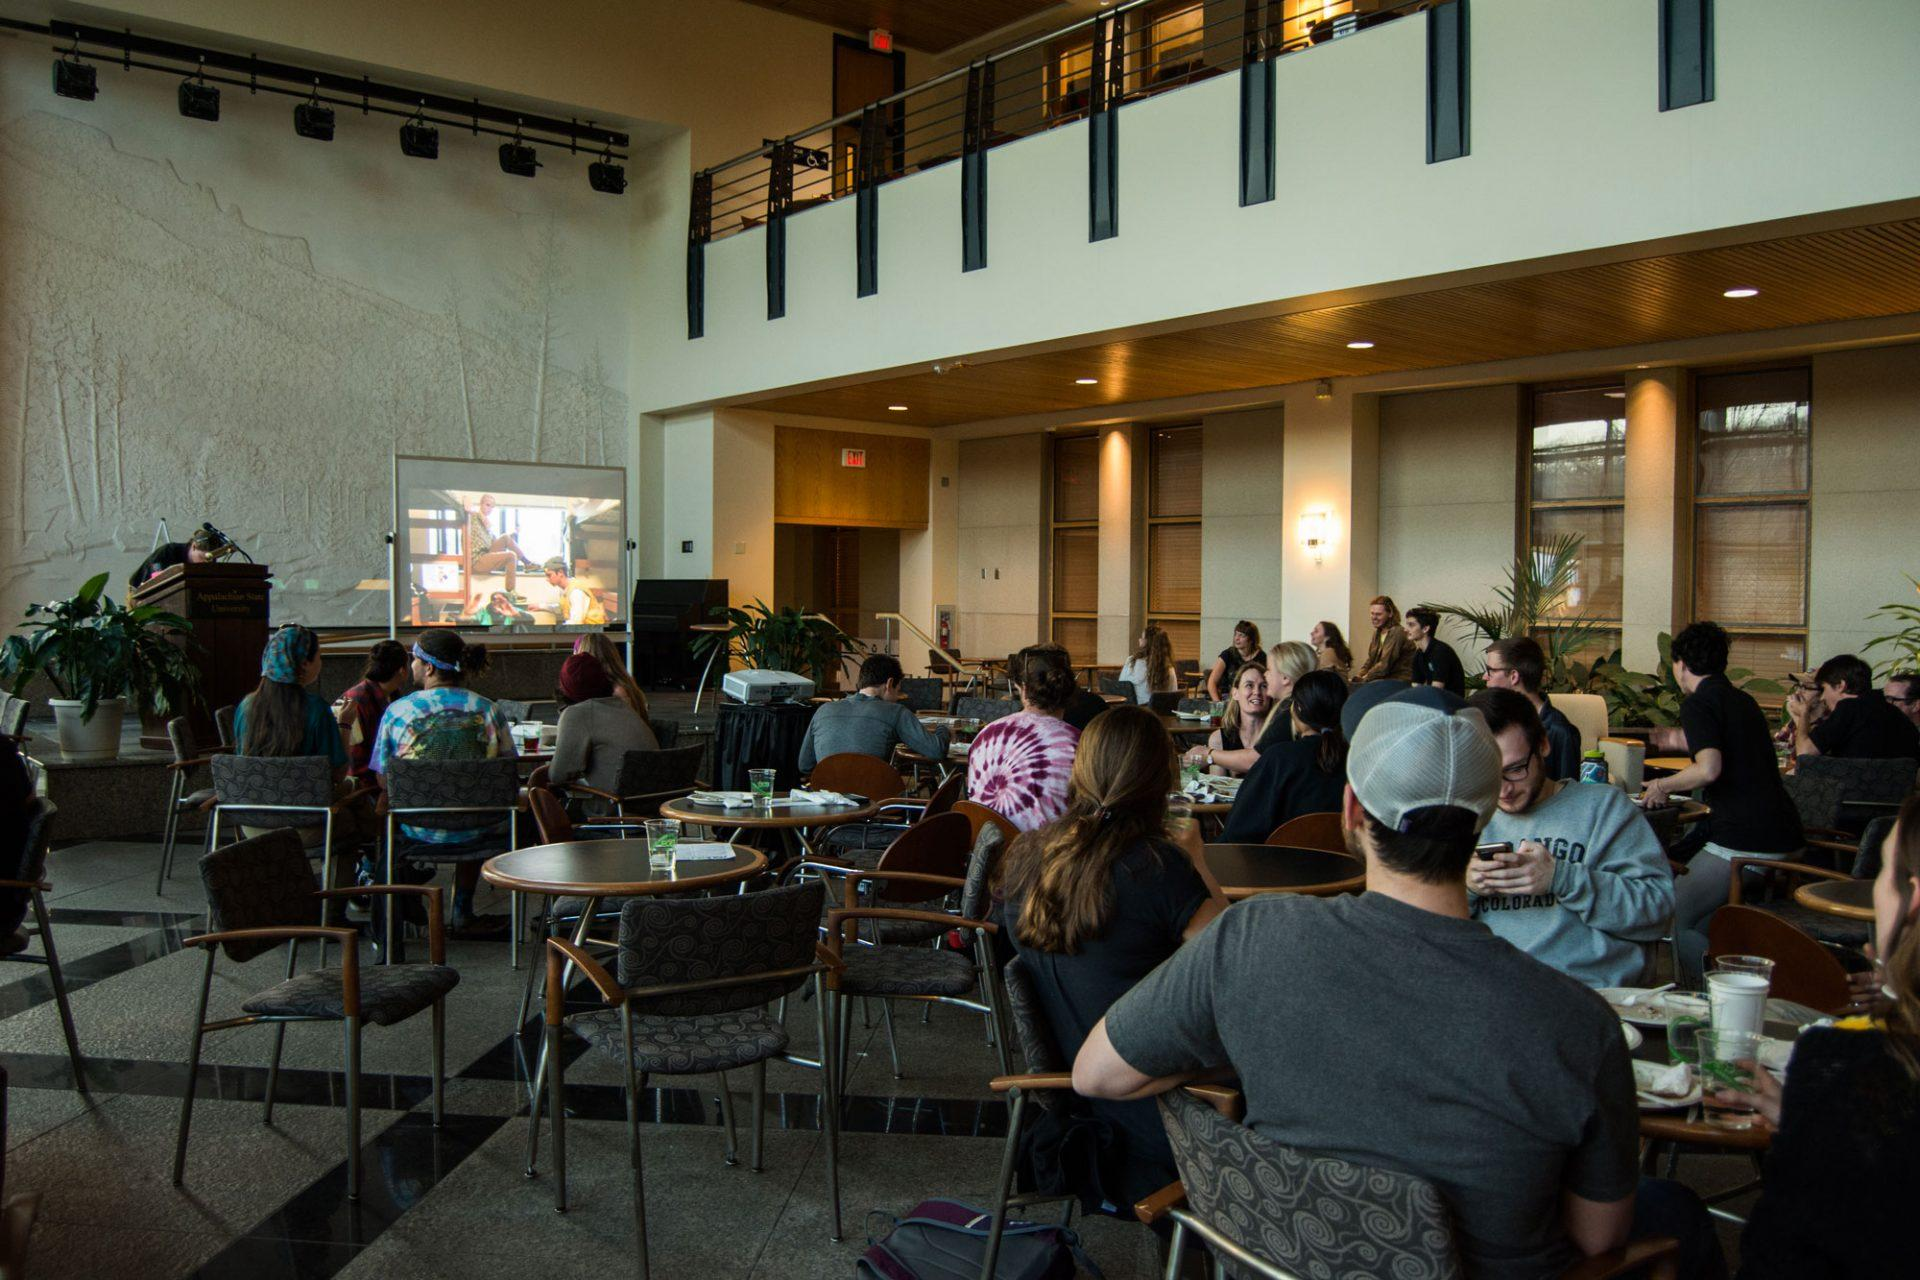 Students watch an informational video during the REI Forum on Thursday. The drop-in event offered a variety of free food and information.